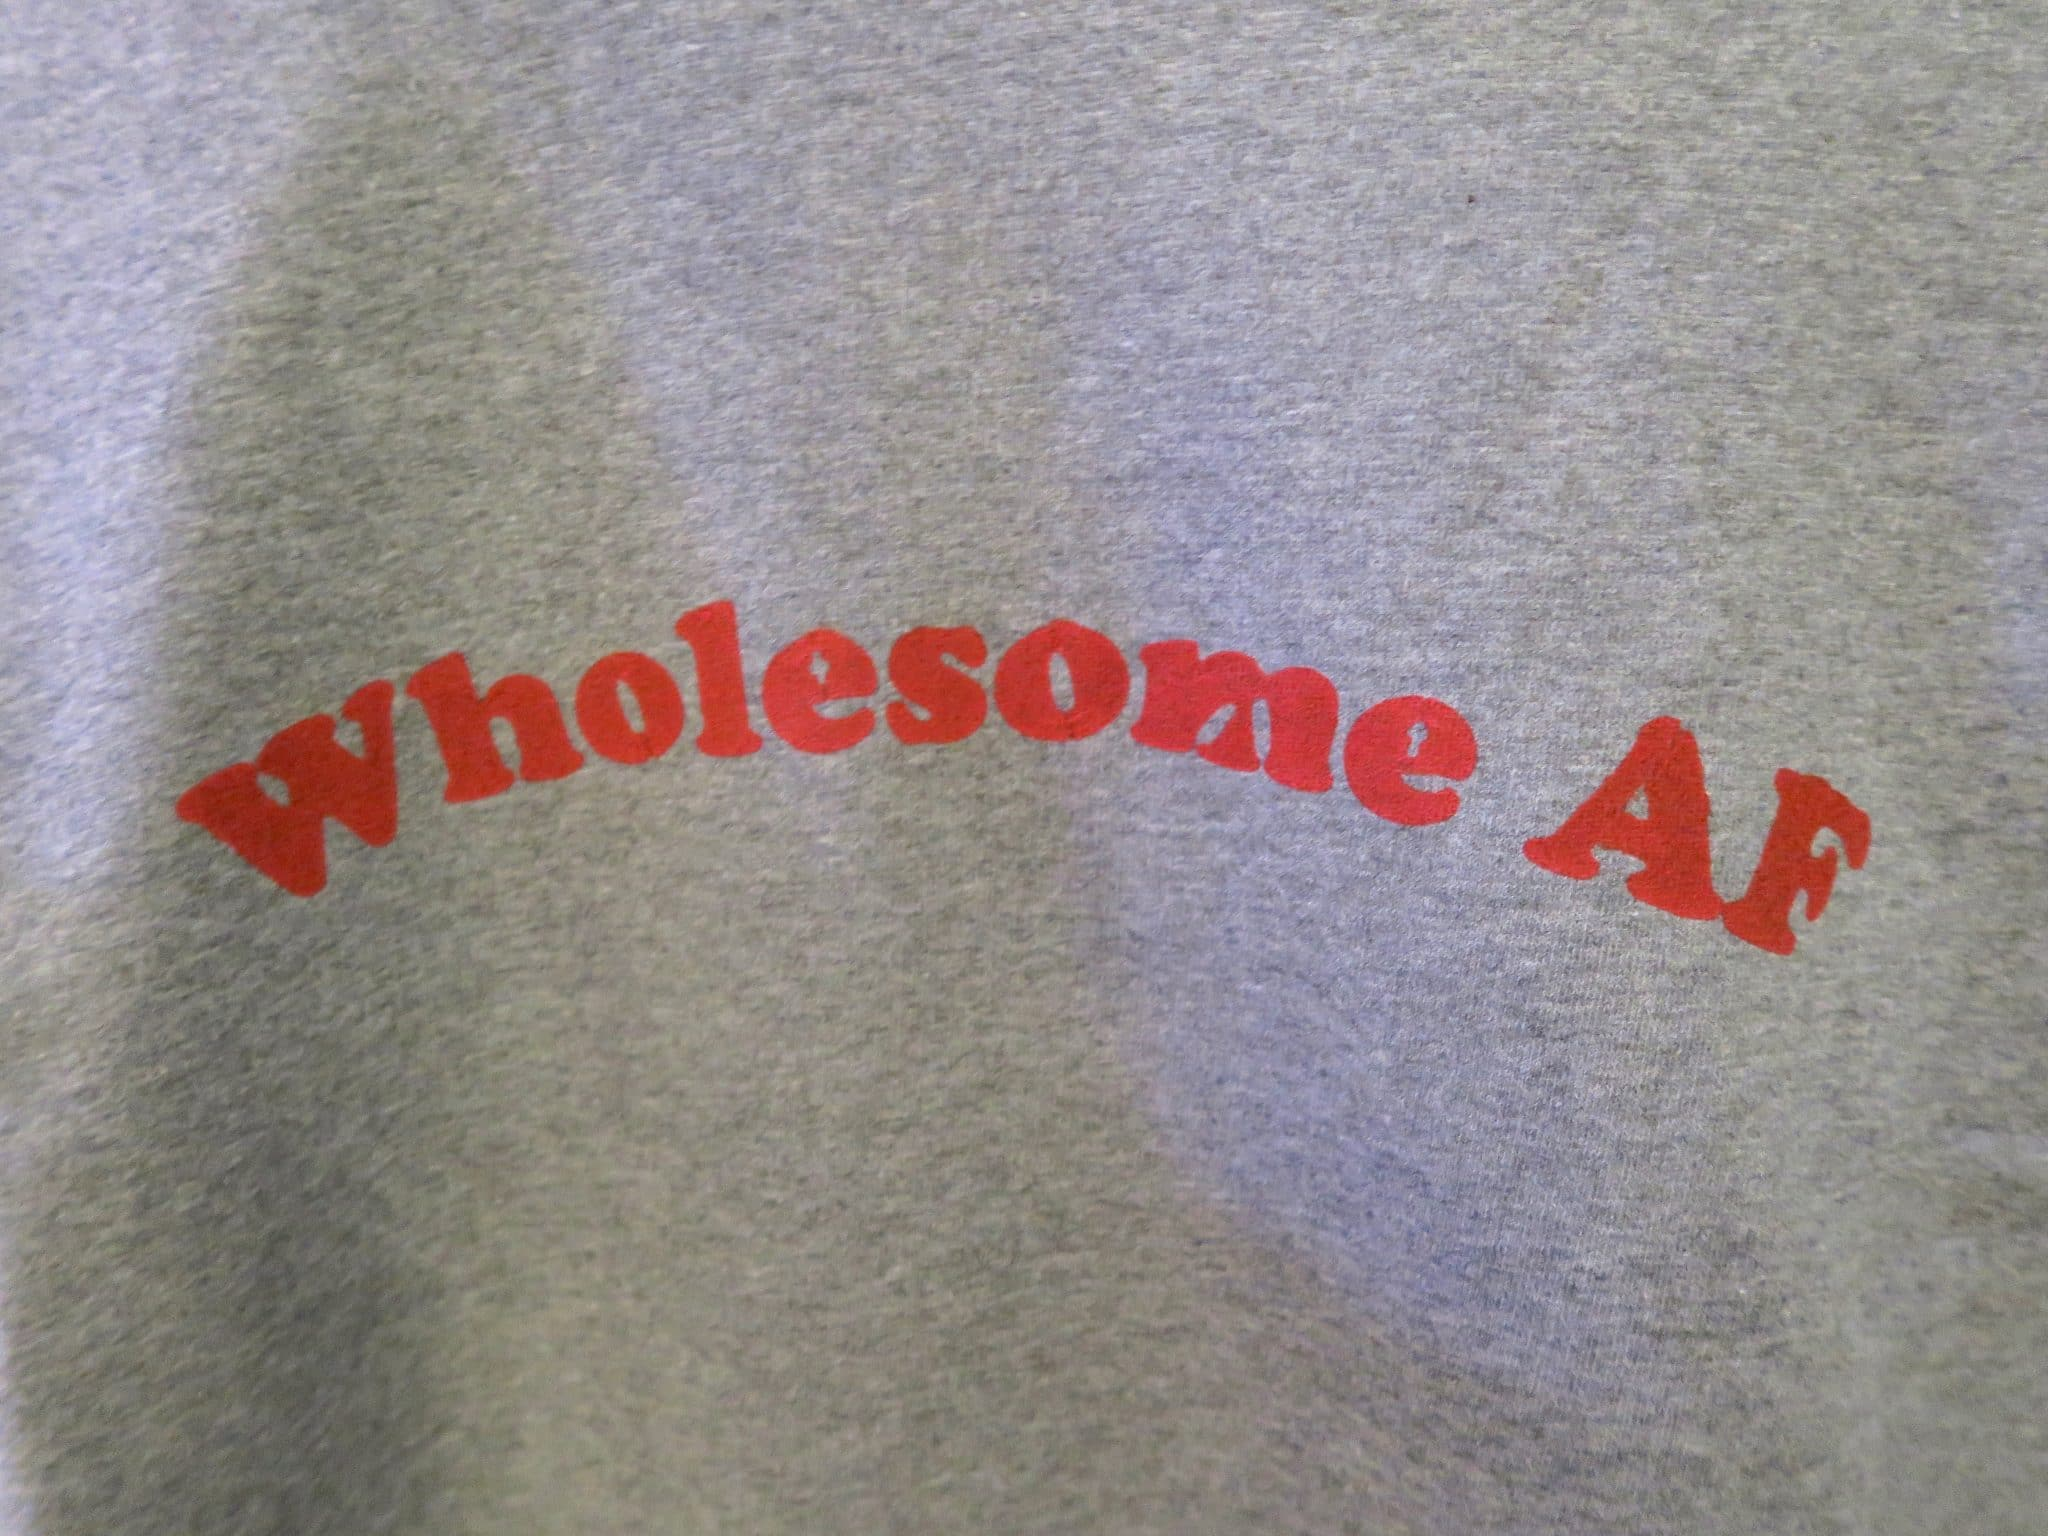 Birdsong Wholesome AF Sweatshirt | Curiously Conscious